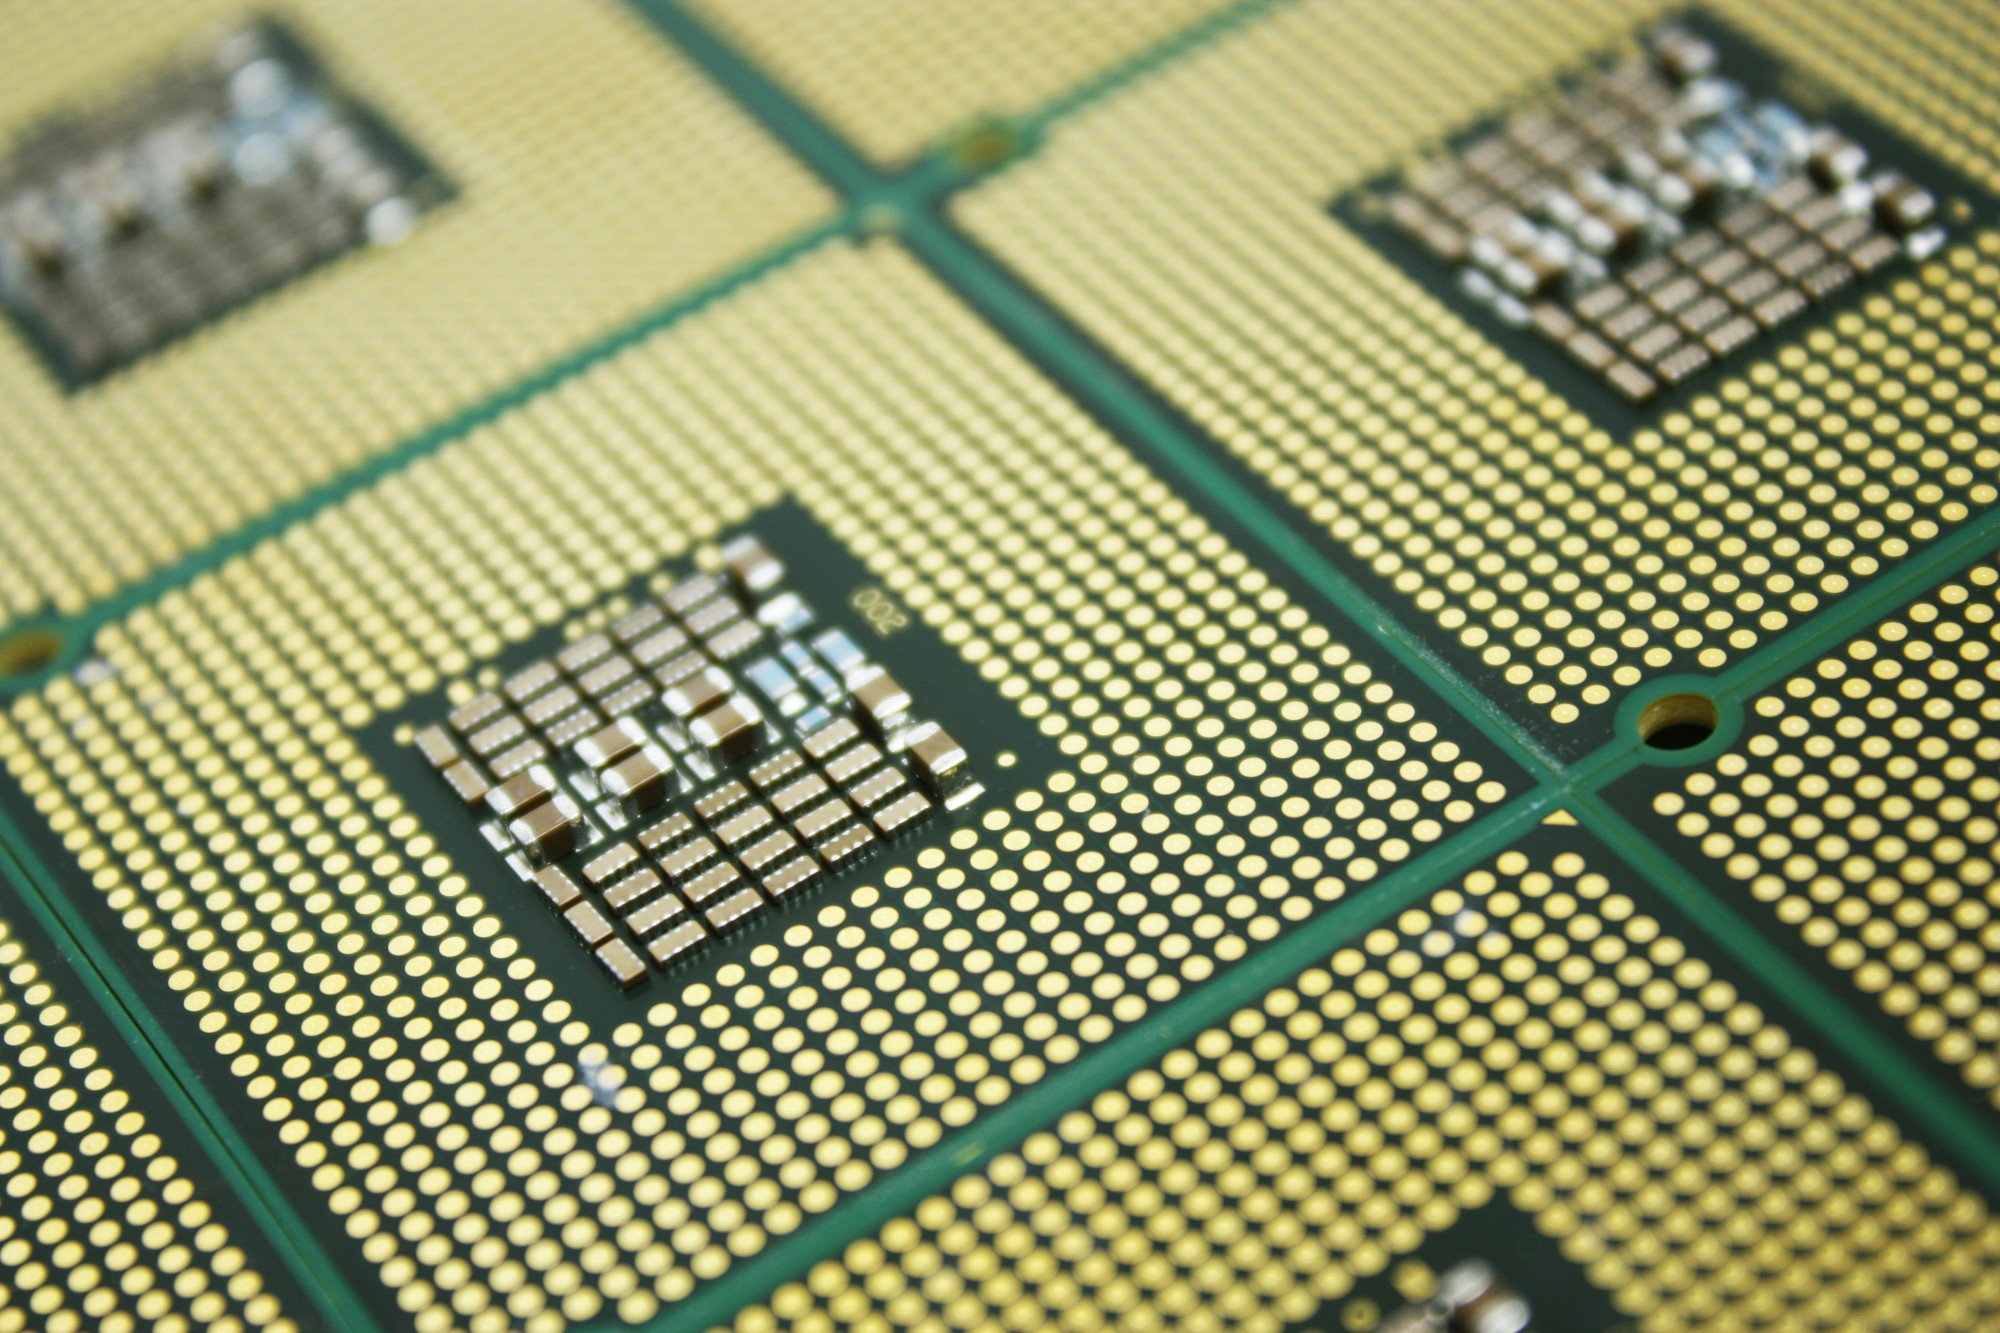 Difference Between Physical Cores and Logical Processors